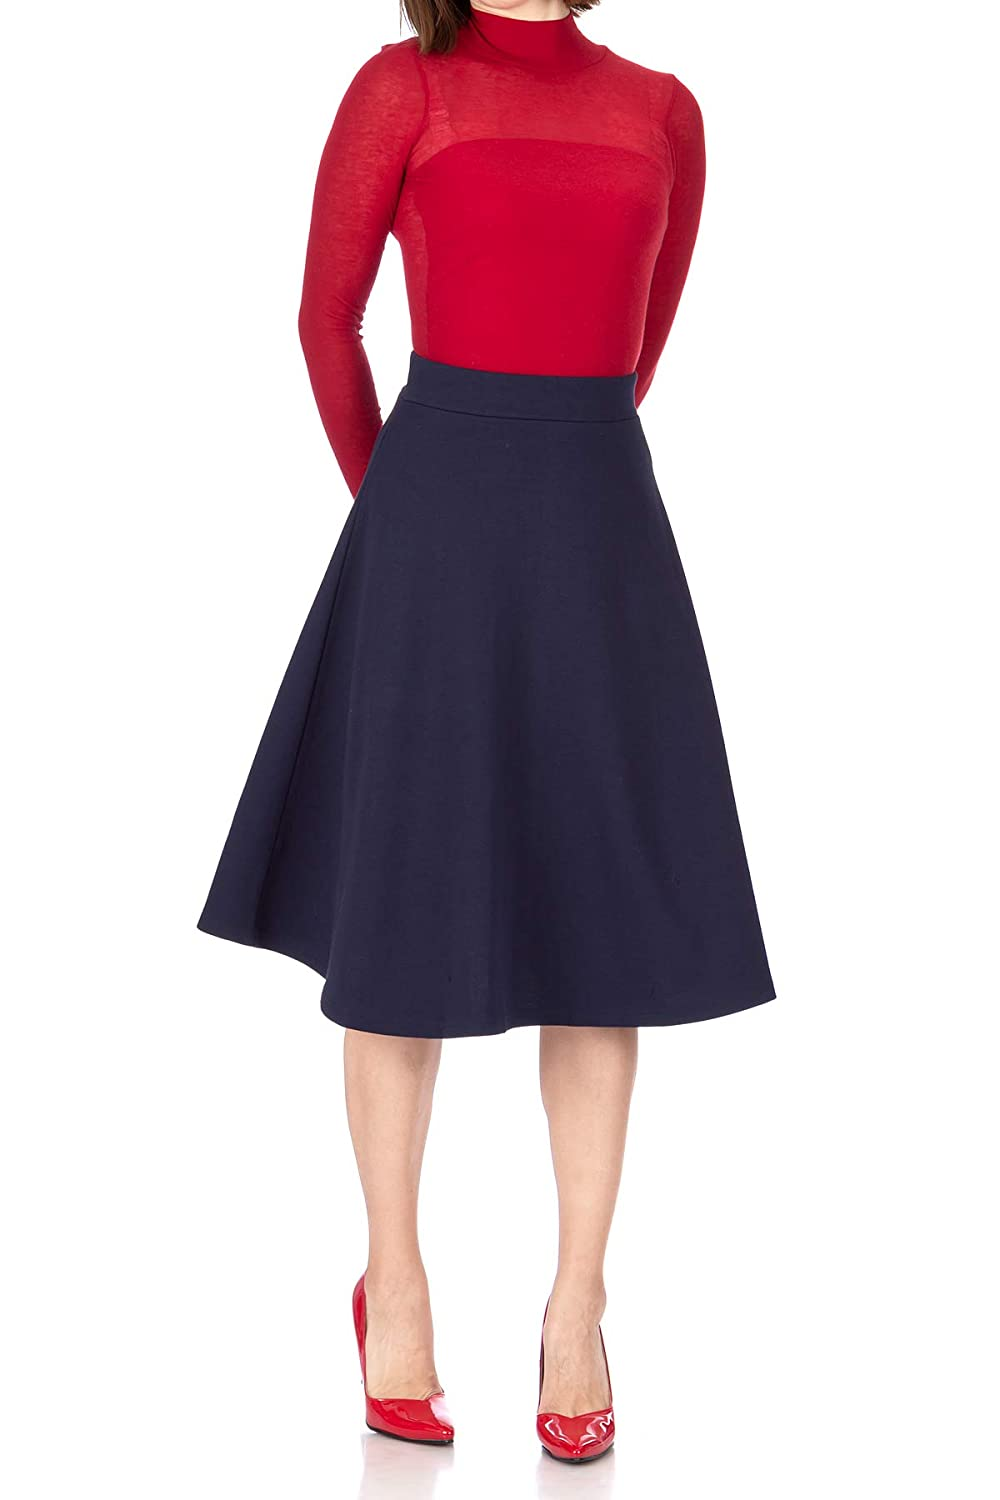 Retro Skirts: Vintage, Pencil, Circle, & Plus Sizes Danis Choice Everyday High Waist A-line Flared Skater Midi Skirt $19.95 AT vintagedancer.com